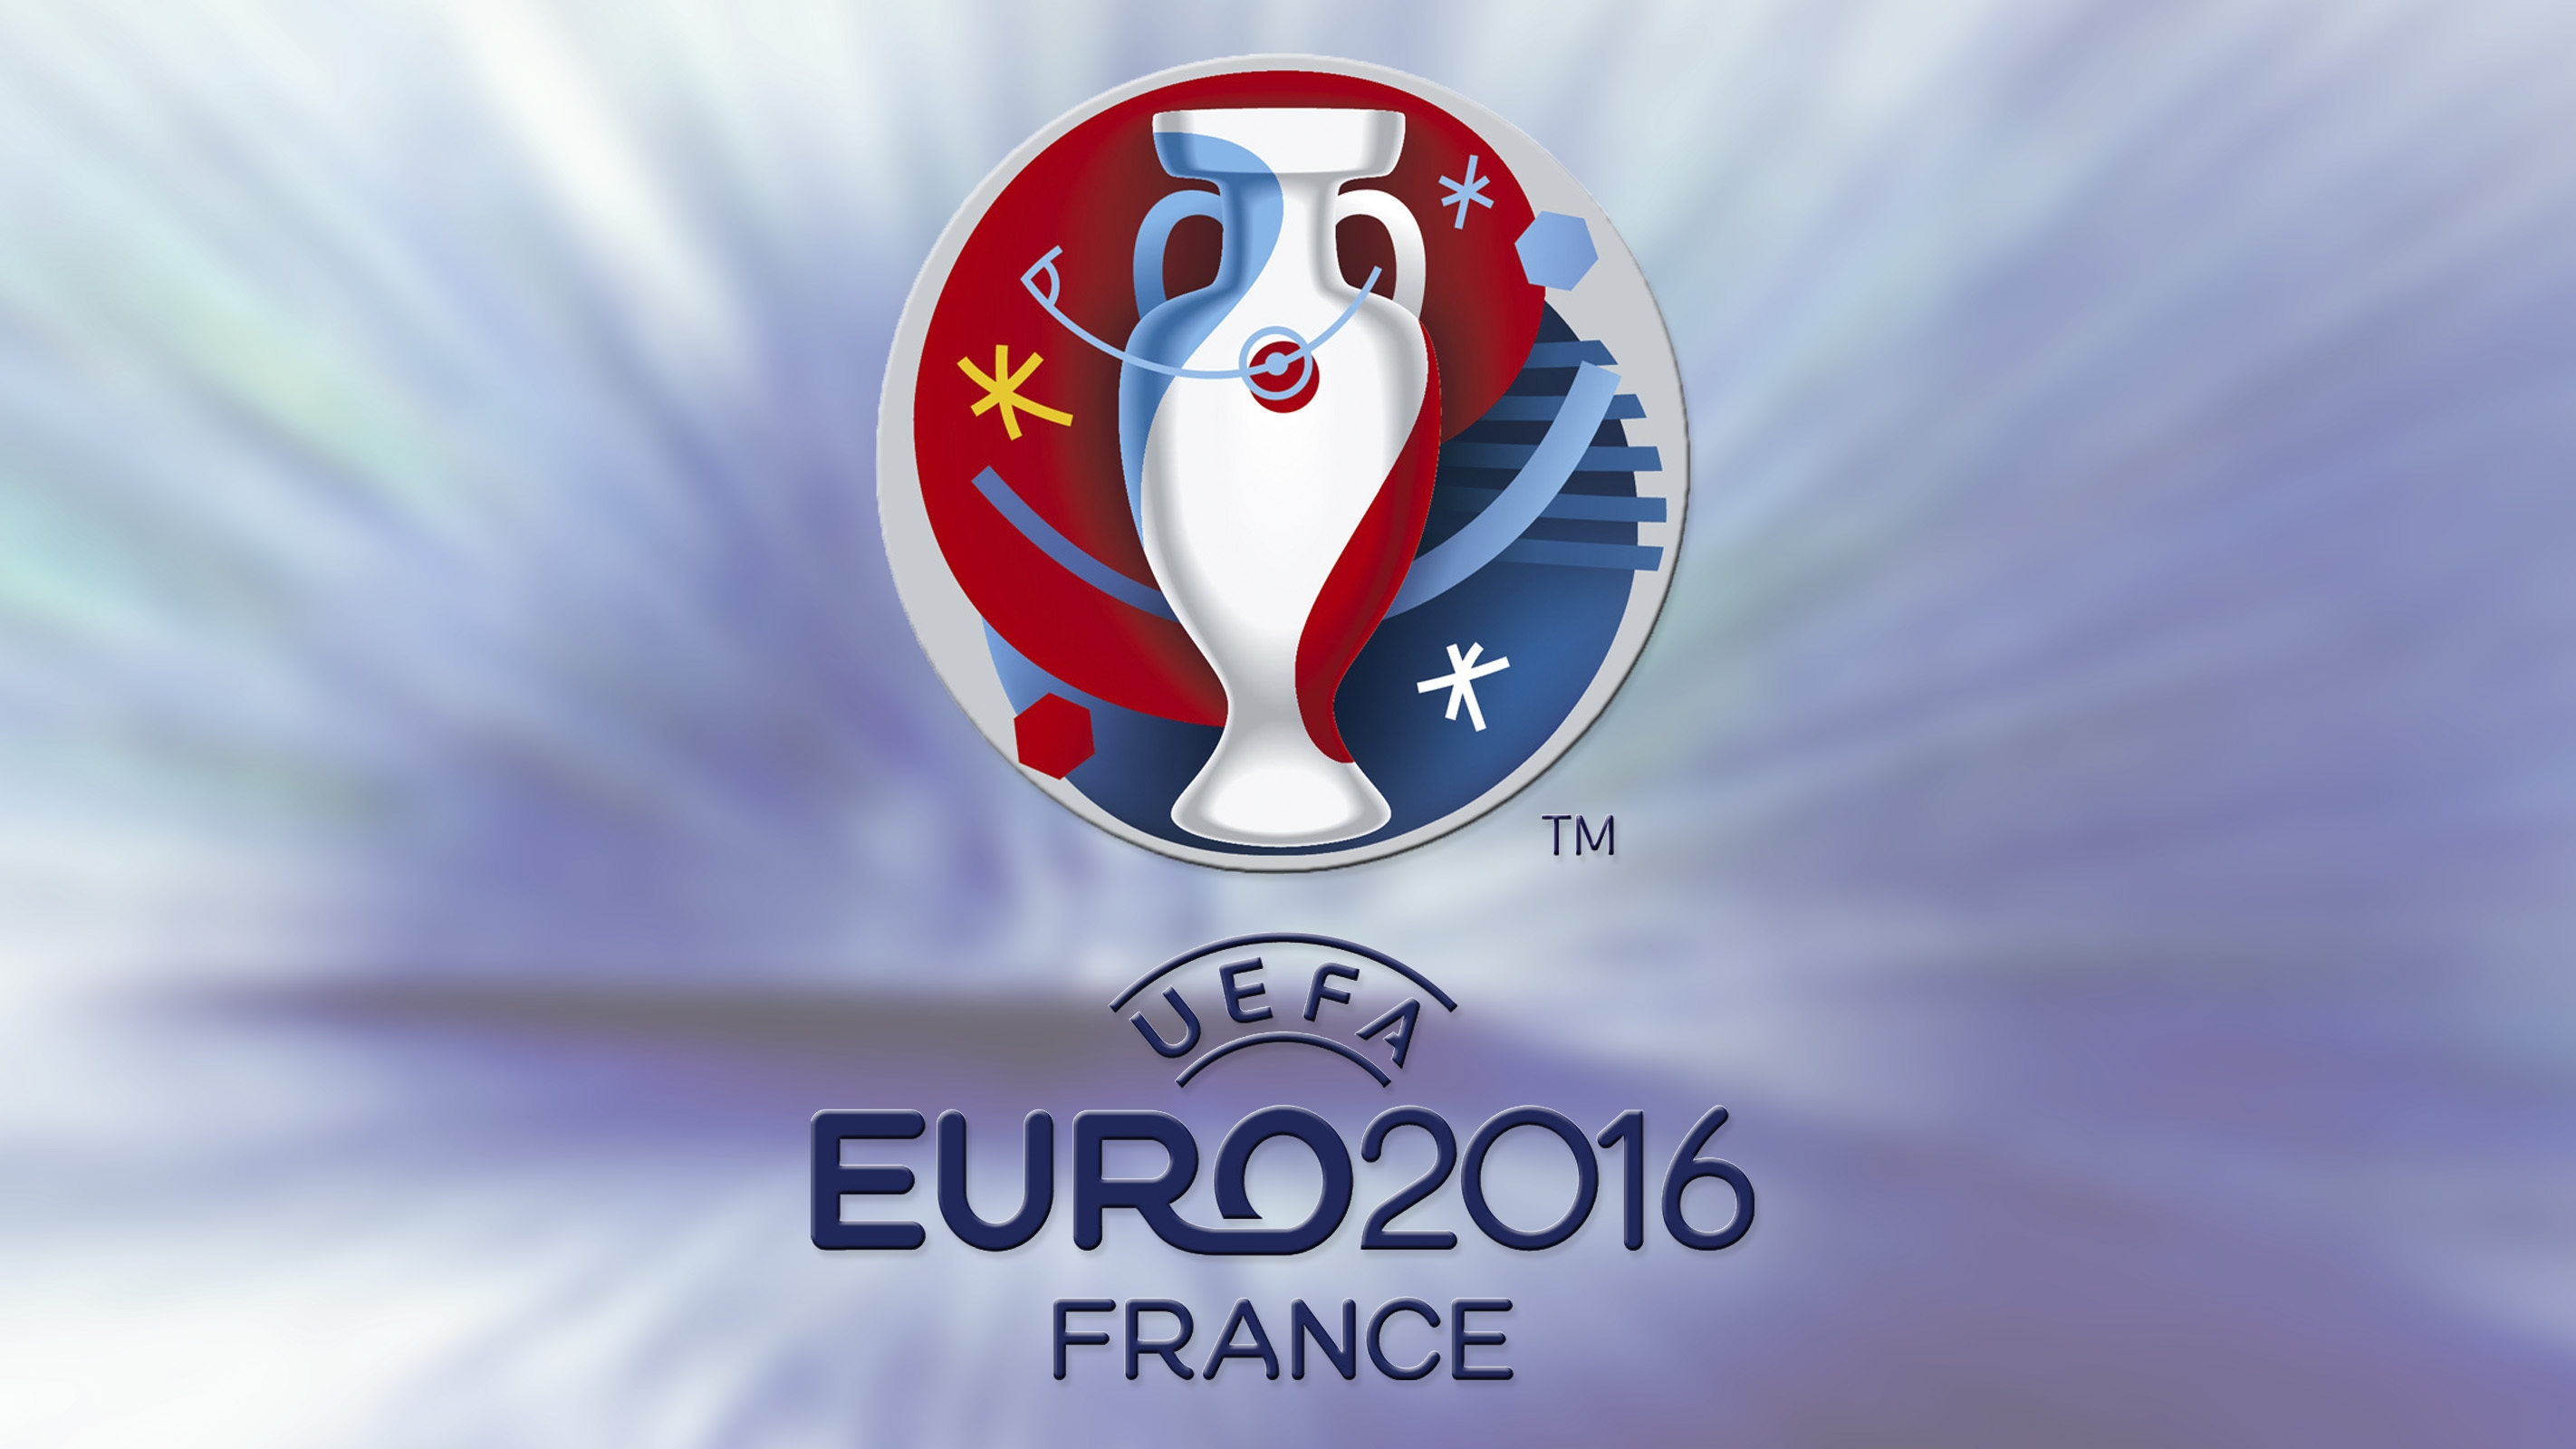 Europe Cup 2016